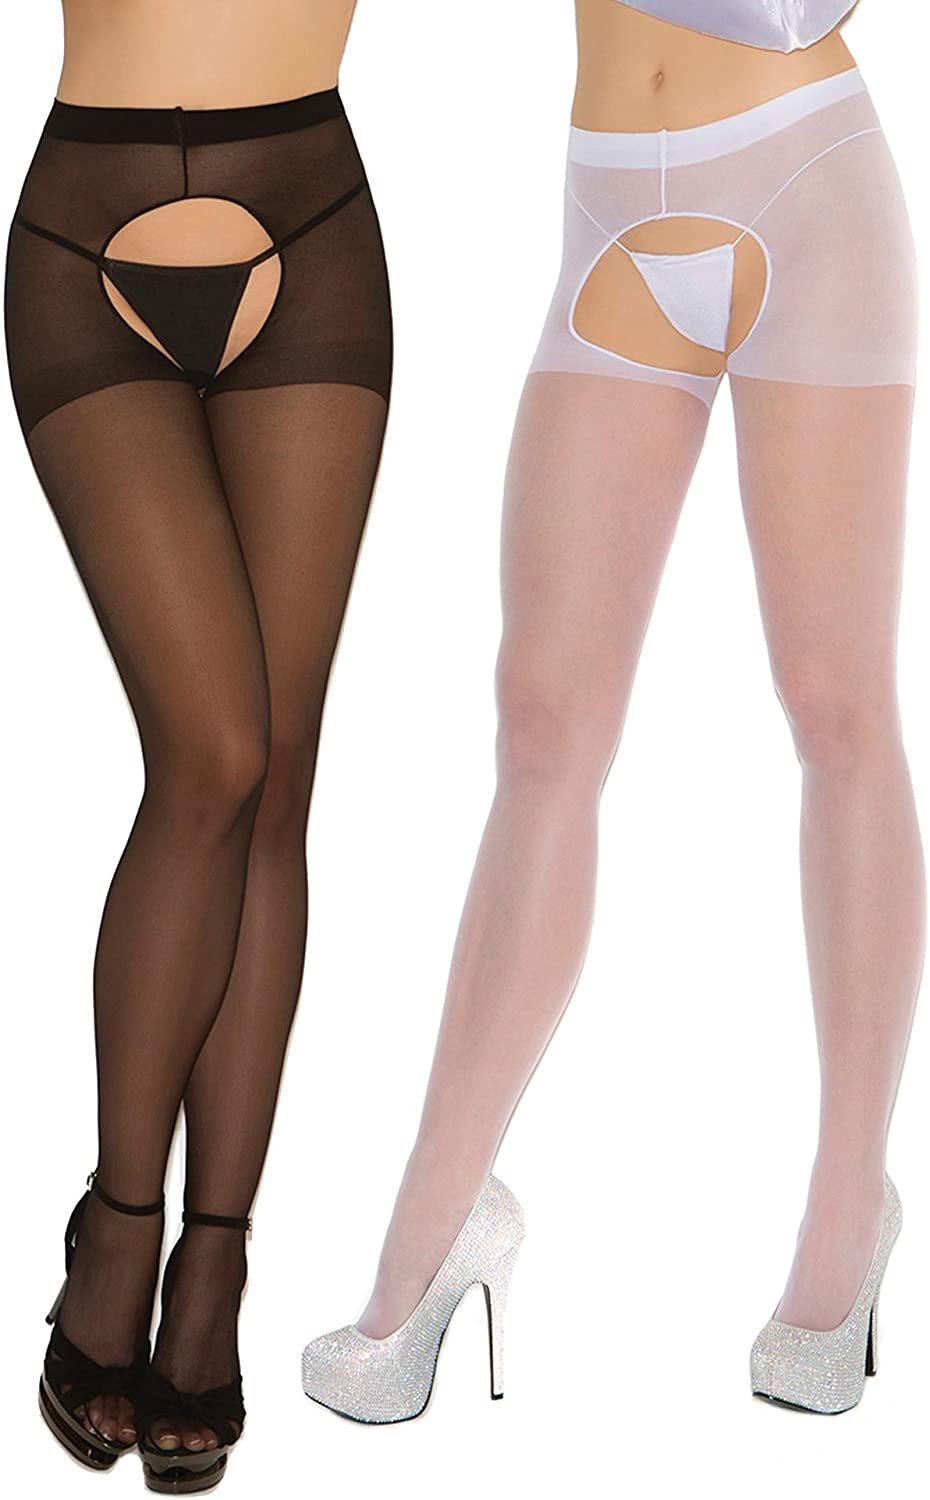 Womens Sexy Sheer Crotchless Pantyhose Hosiery Stockings Tights 2